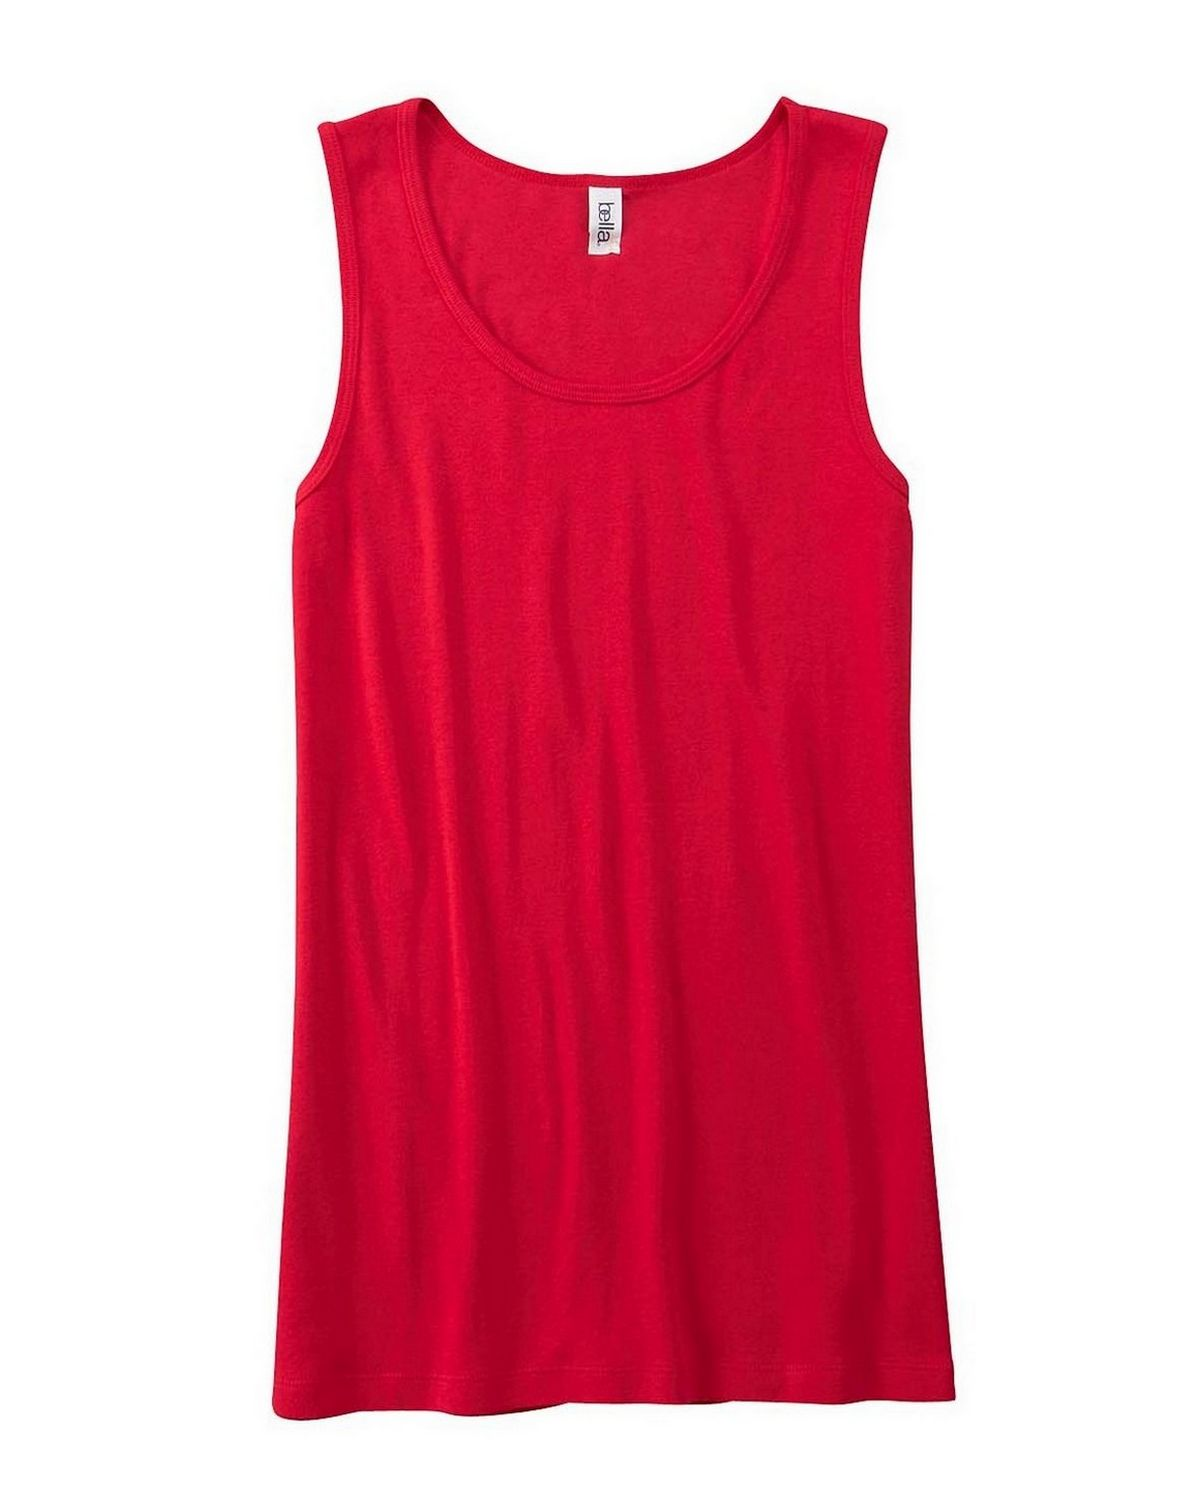 Bella + Canvas 6480 Ladies Missy Widestrap Baby Rib Tank - Red - L 6480